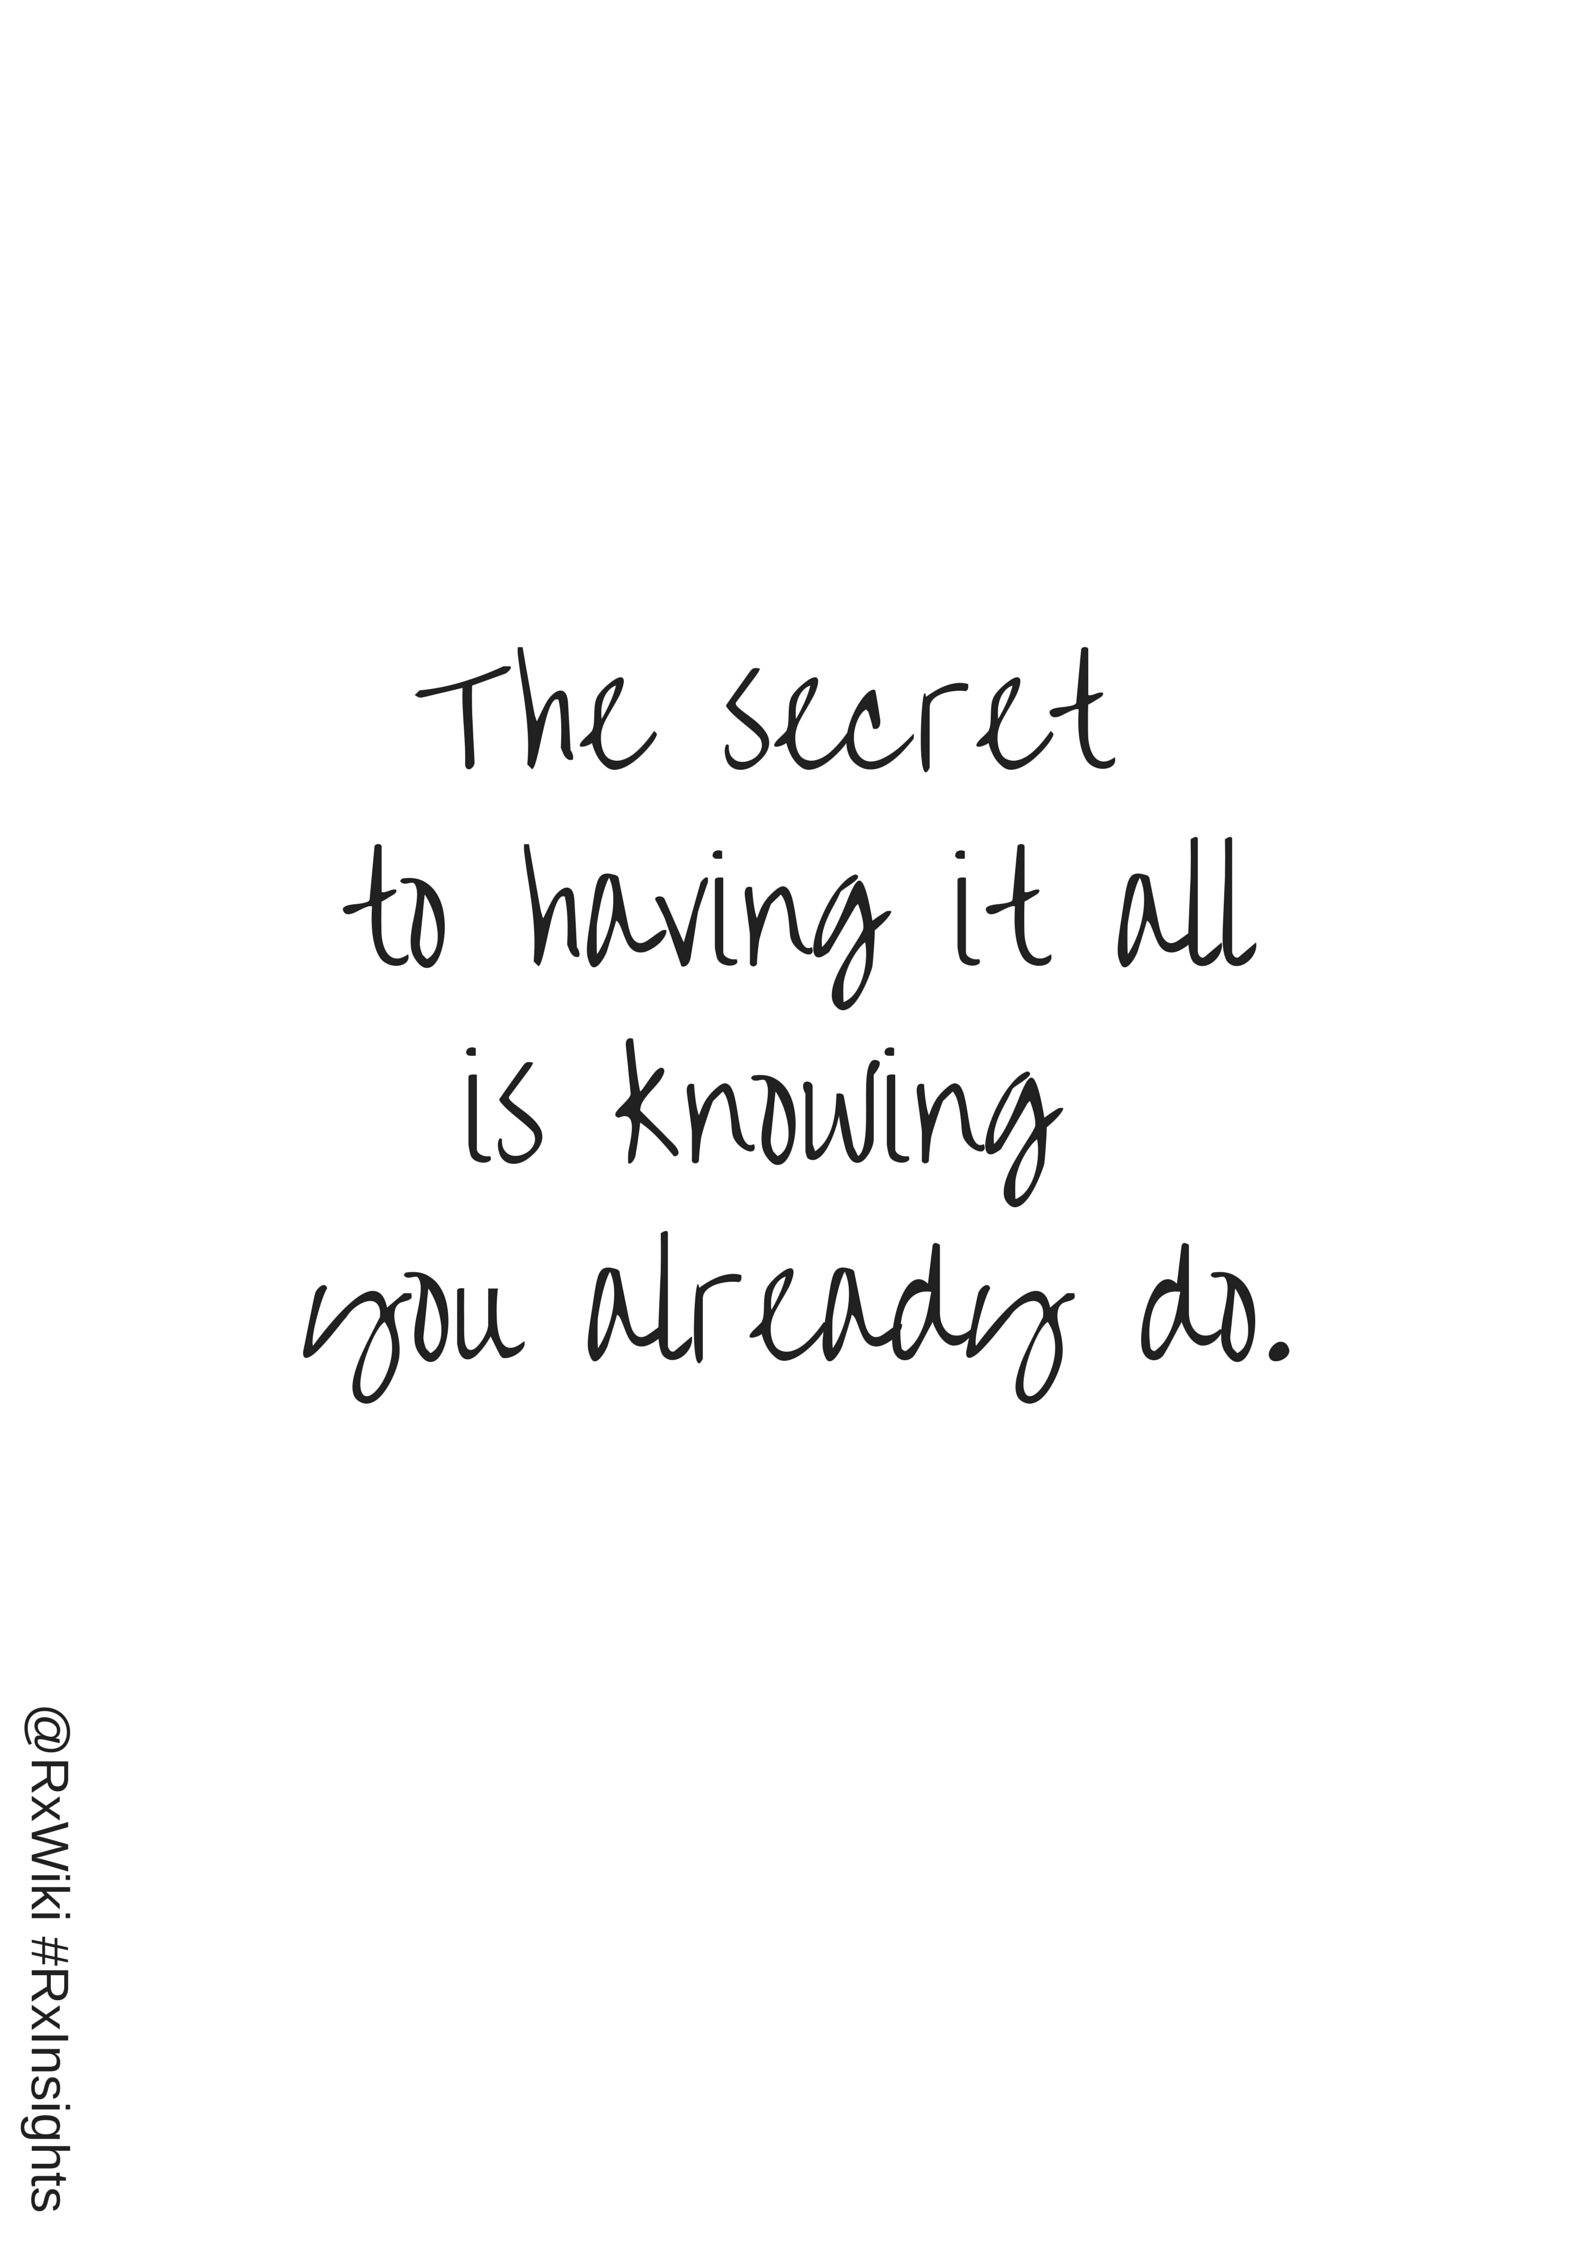 Family Love Quotes Alluring The Secret To Having It All Is Knowing You Already Do #quote #secret